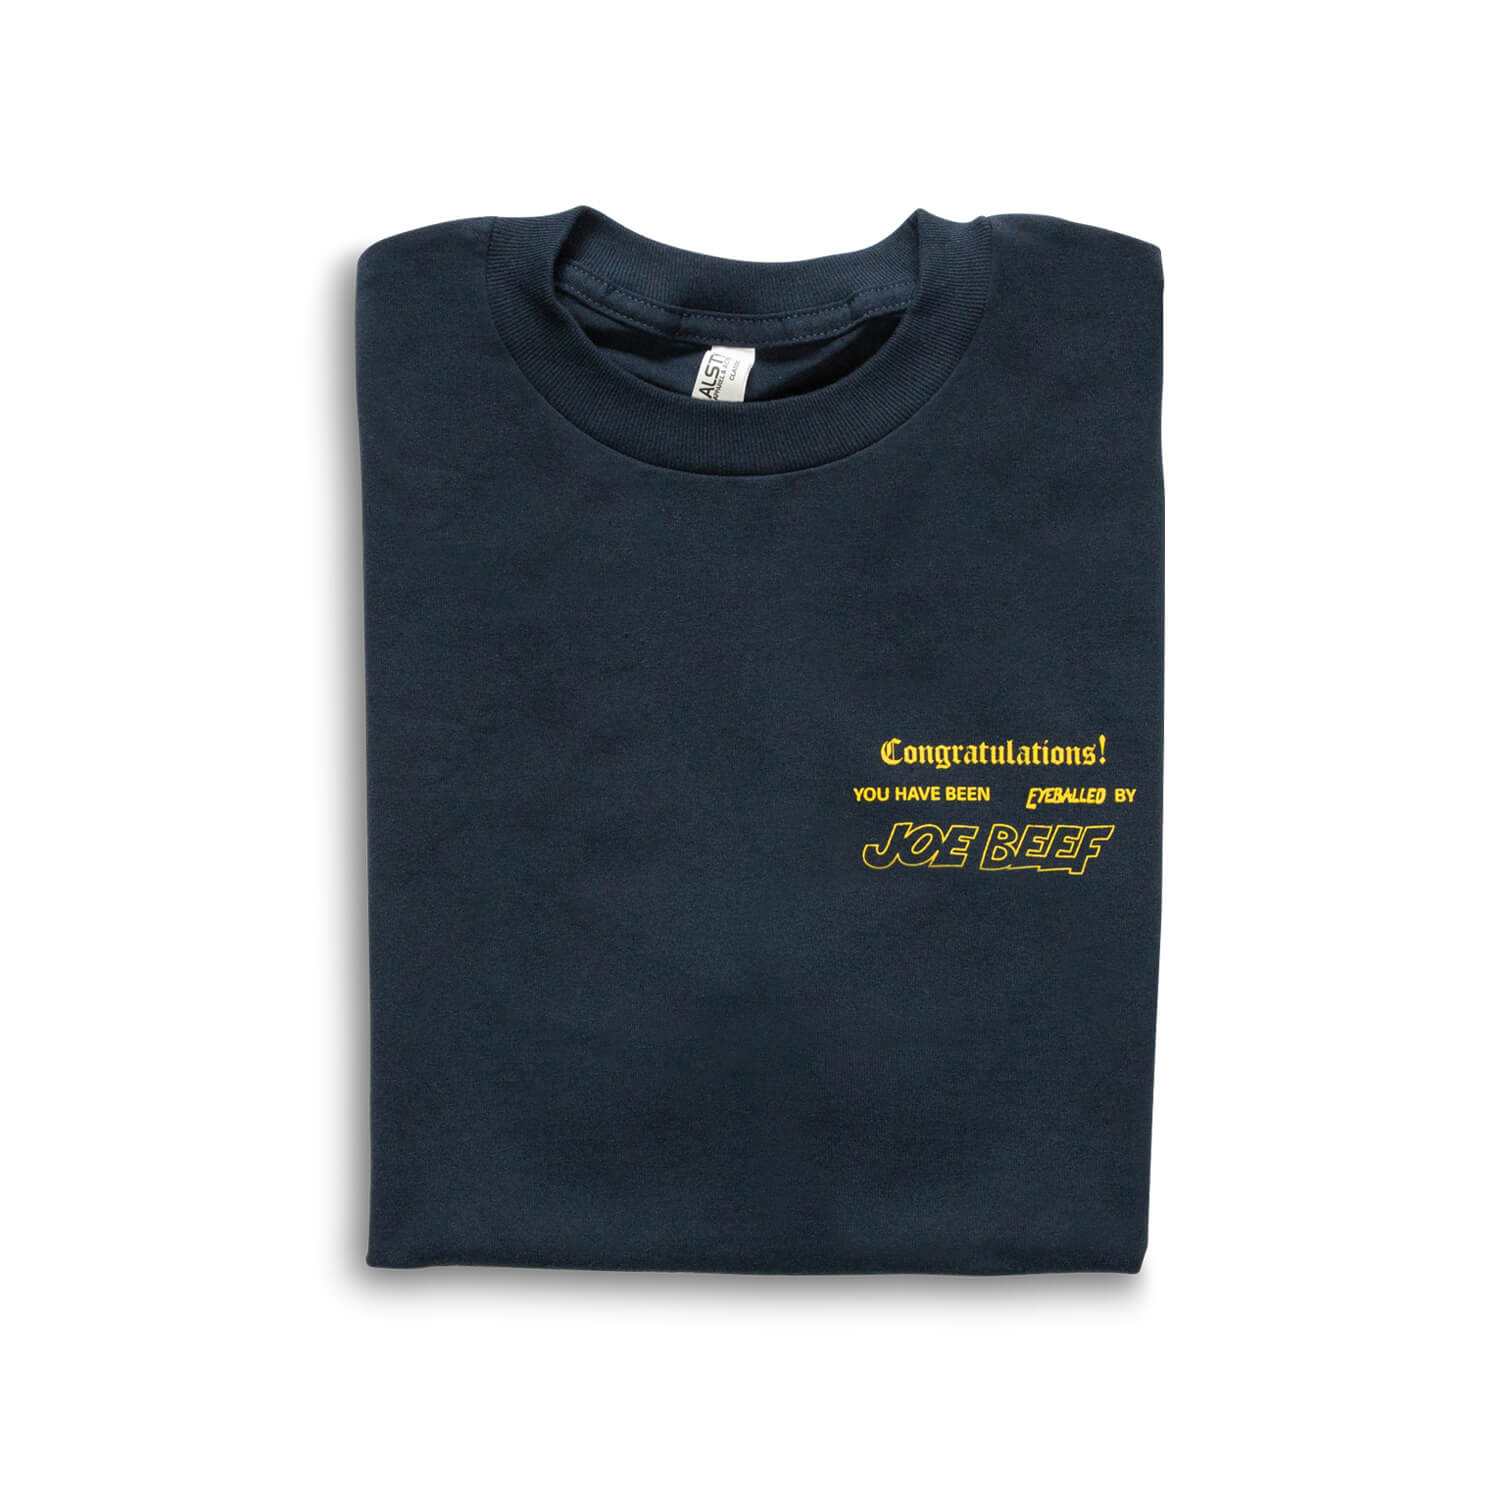 faf4a85bcad7 Joe Beef Congratulations T-Shirt (Navy/Yellow)